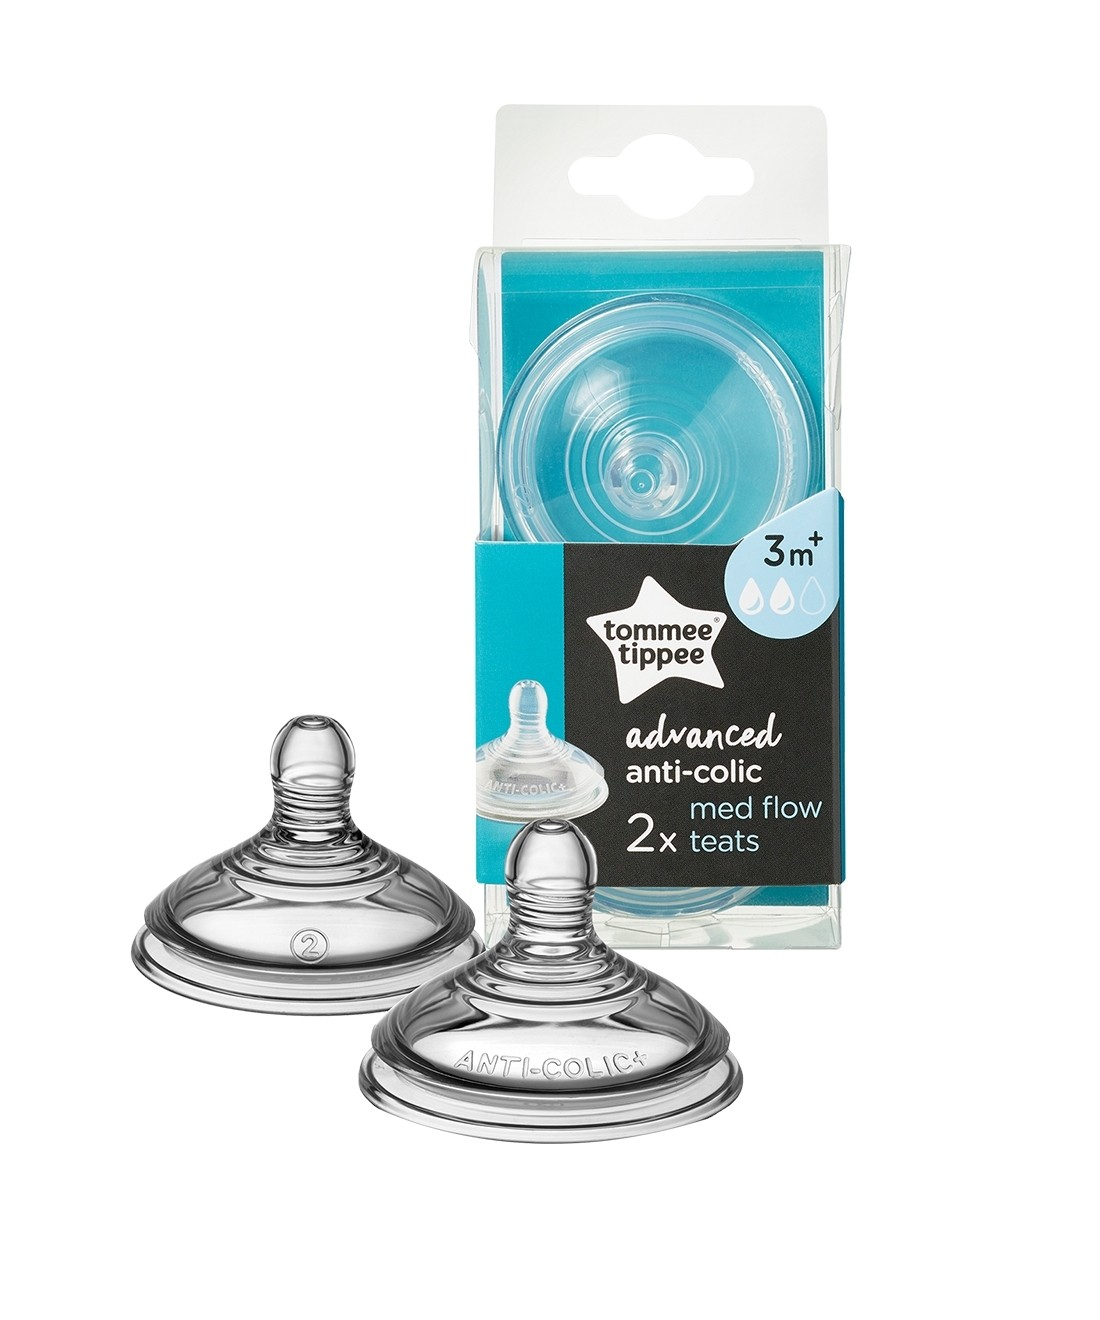 Tommee Tippee Advanced Anti-Colic Medium Flow Teats - 2 Pack